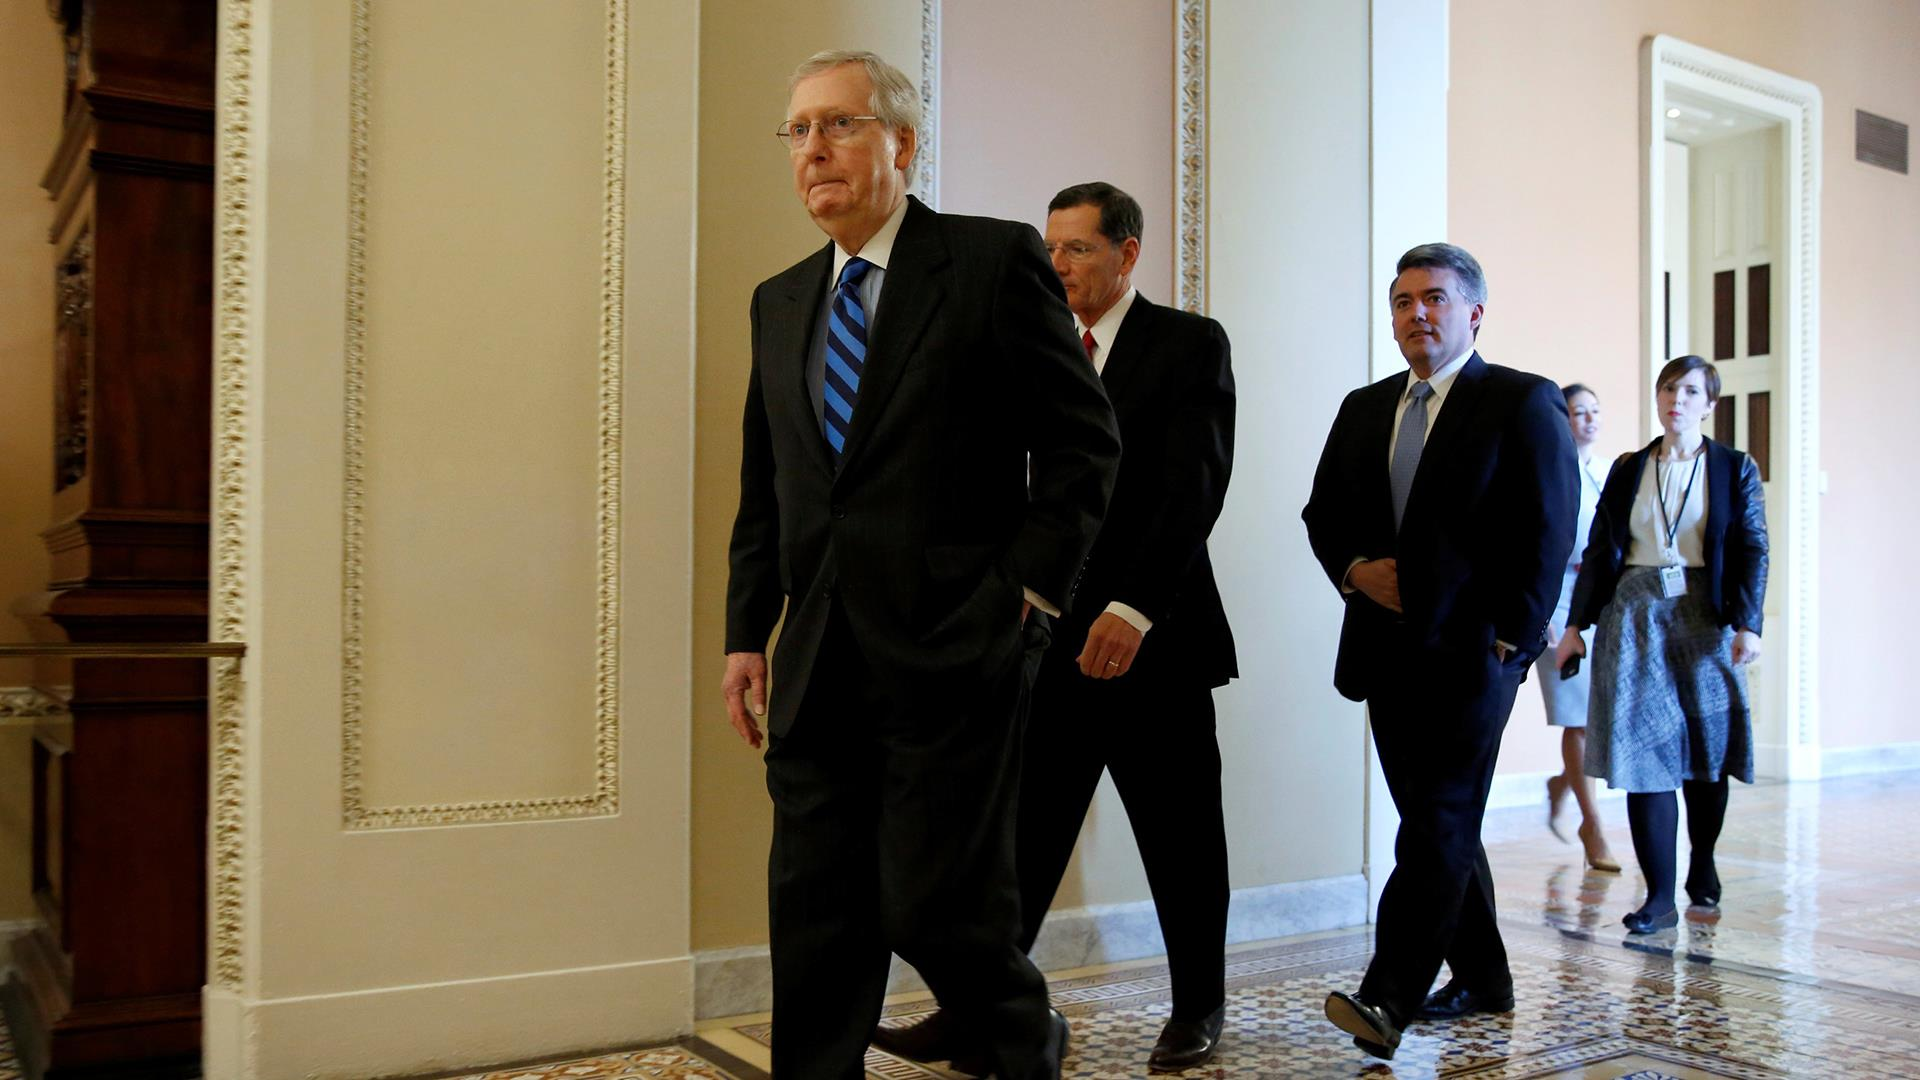 Senate optimistic on budget deal despite Trump's shutdown threat